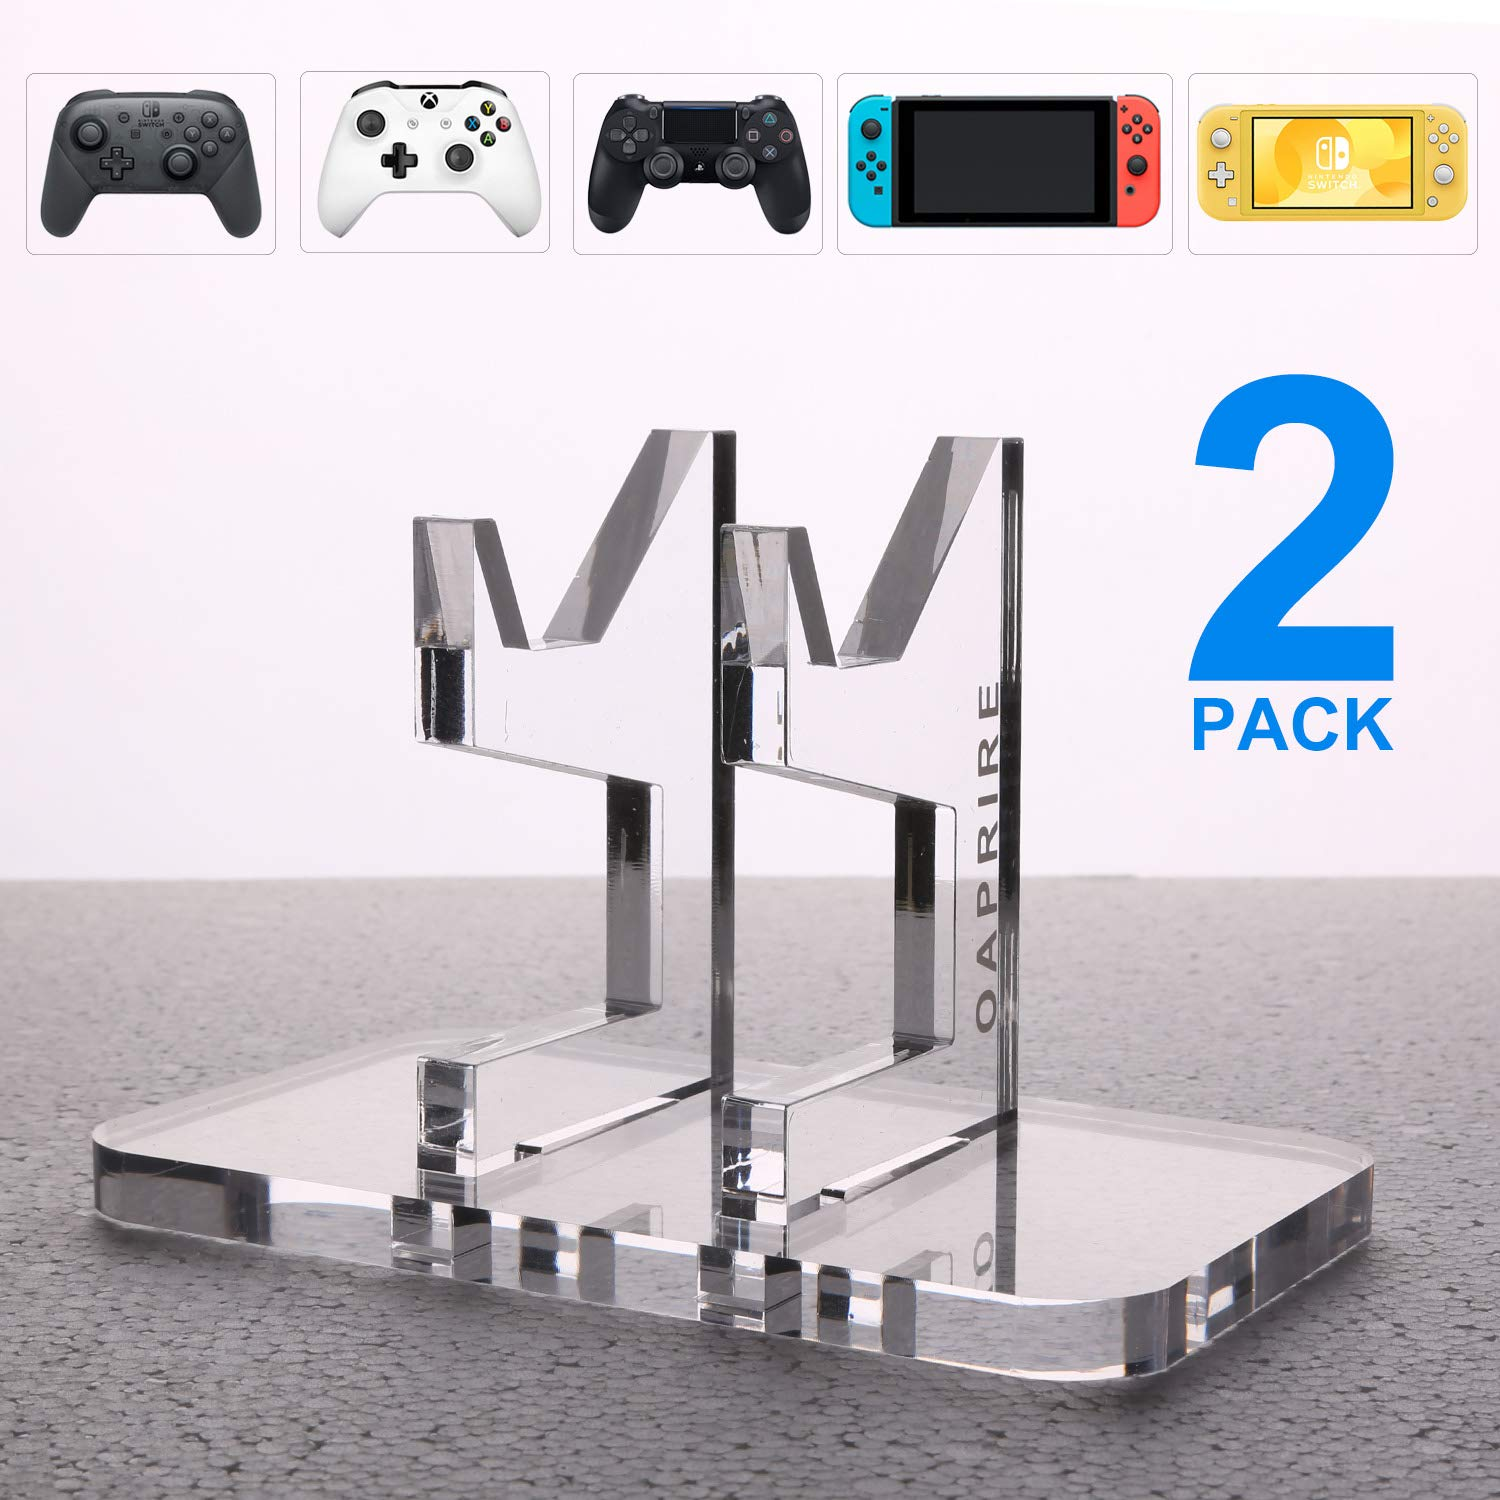 OAPRIRE Game Controller Stand Holder (2 Pack) for PS4 / Nintendo Switch / Xbox One / Steam / PC / Phone - Limited Edition PS4 xbox one Controller Accessories - Universal Fit - Easy Charging Access by OAPRIRE